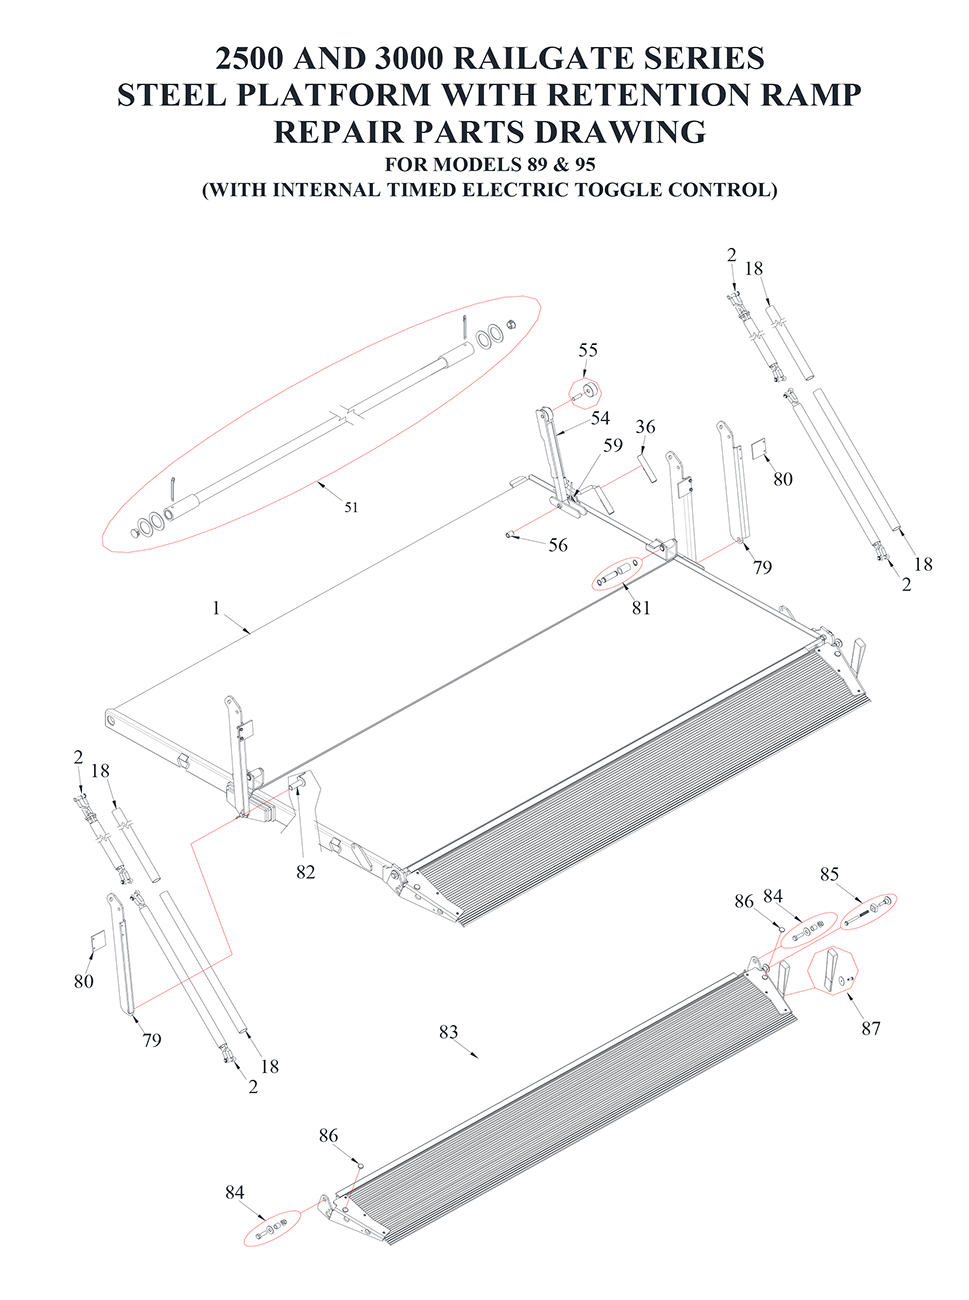 Liftgate Diagrams - Tommy Gate Liftgate Parts & Diagrams - Shop ITE on tommy gate controller, tommy gate dimensions, tommy gate springs, tommy gate solenoid, tommy gate parts, tommy gate repair, tommy gate lights, tommy gate operation,